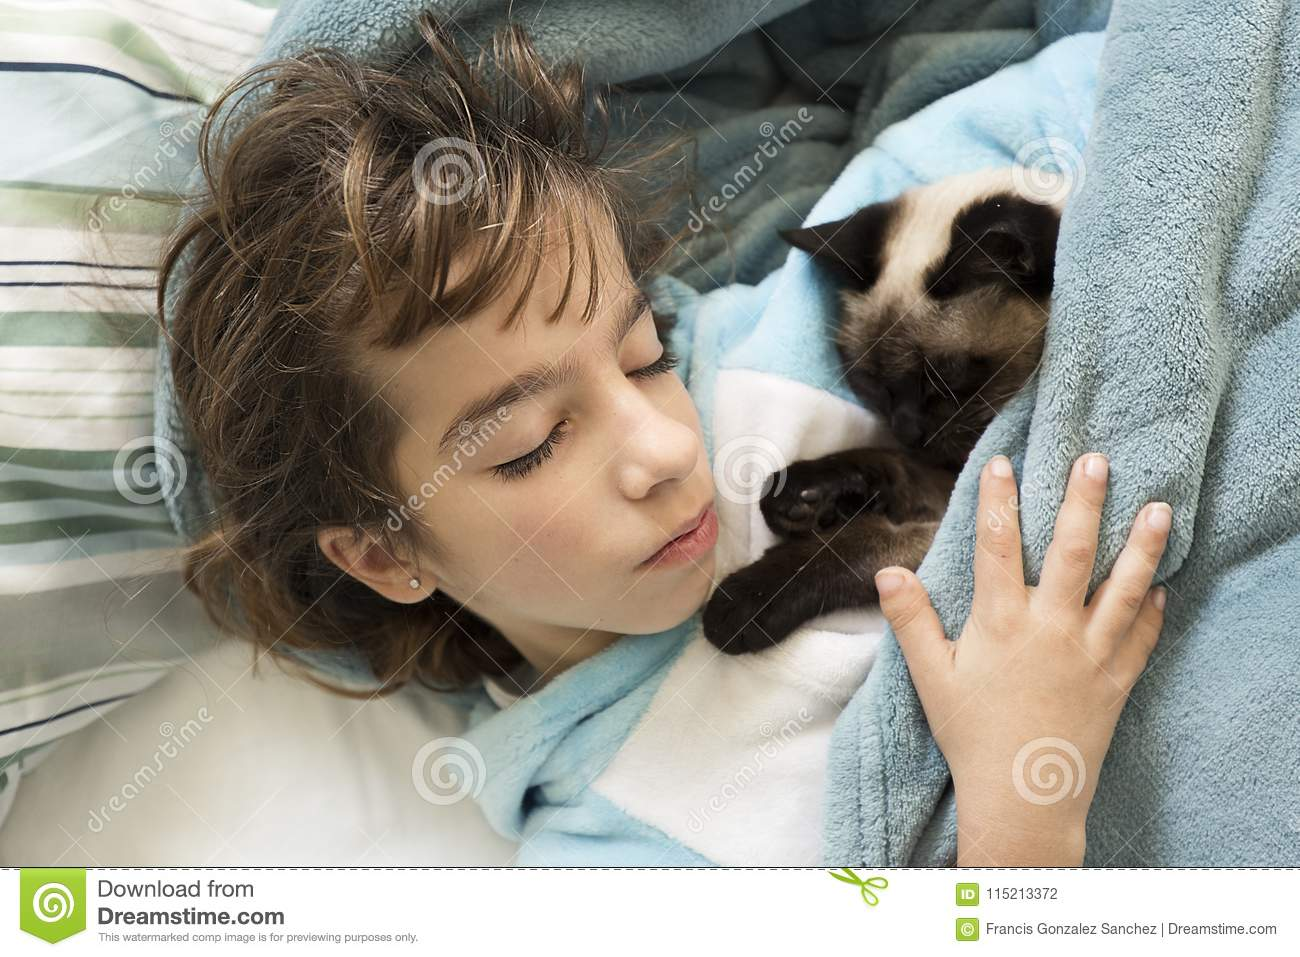 10 year old girl sleeping in bed with her cat on top.